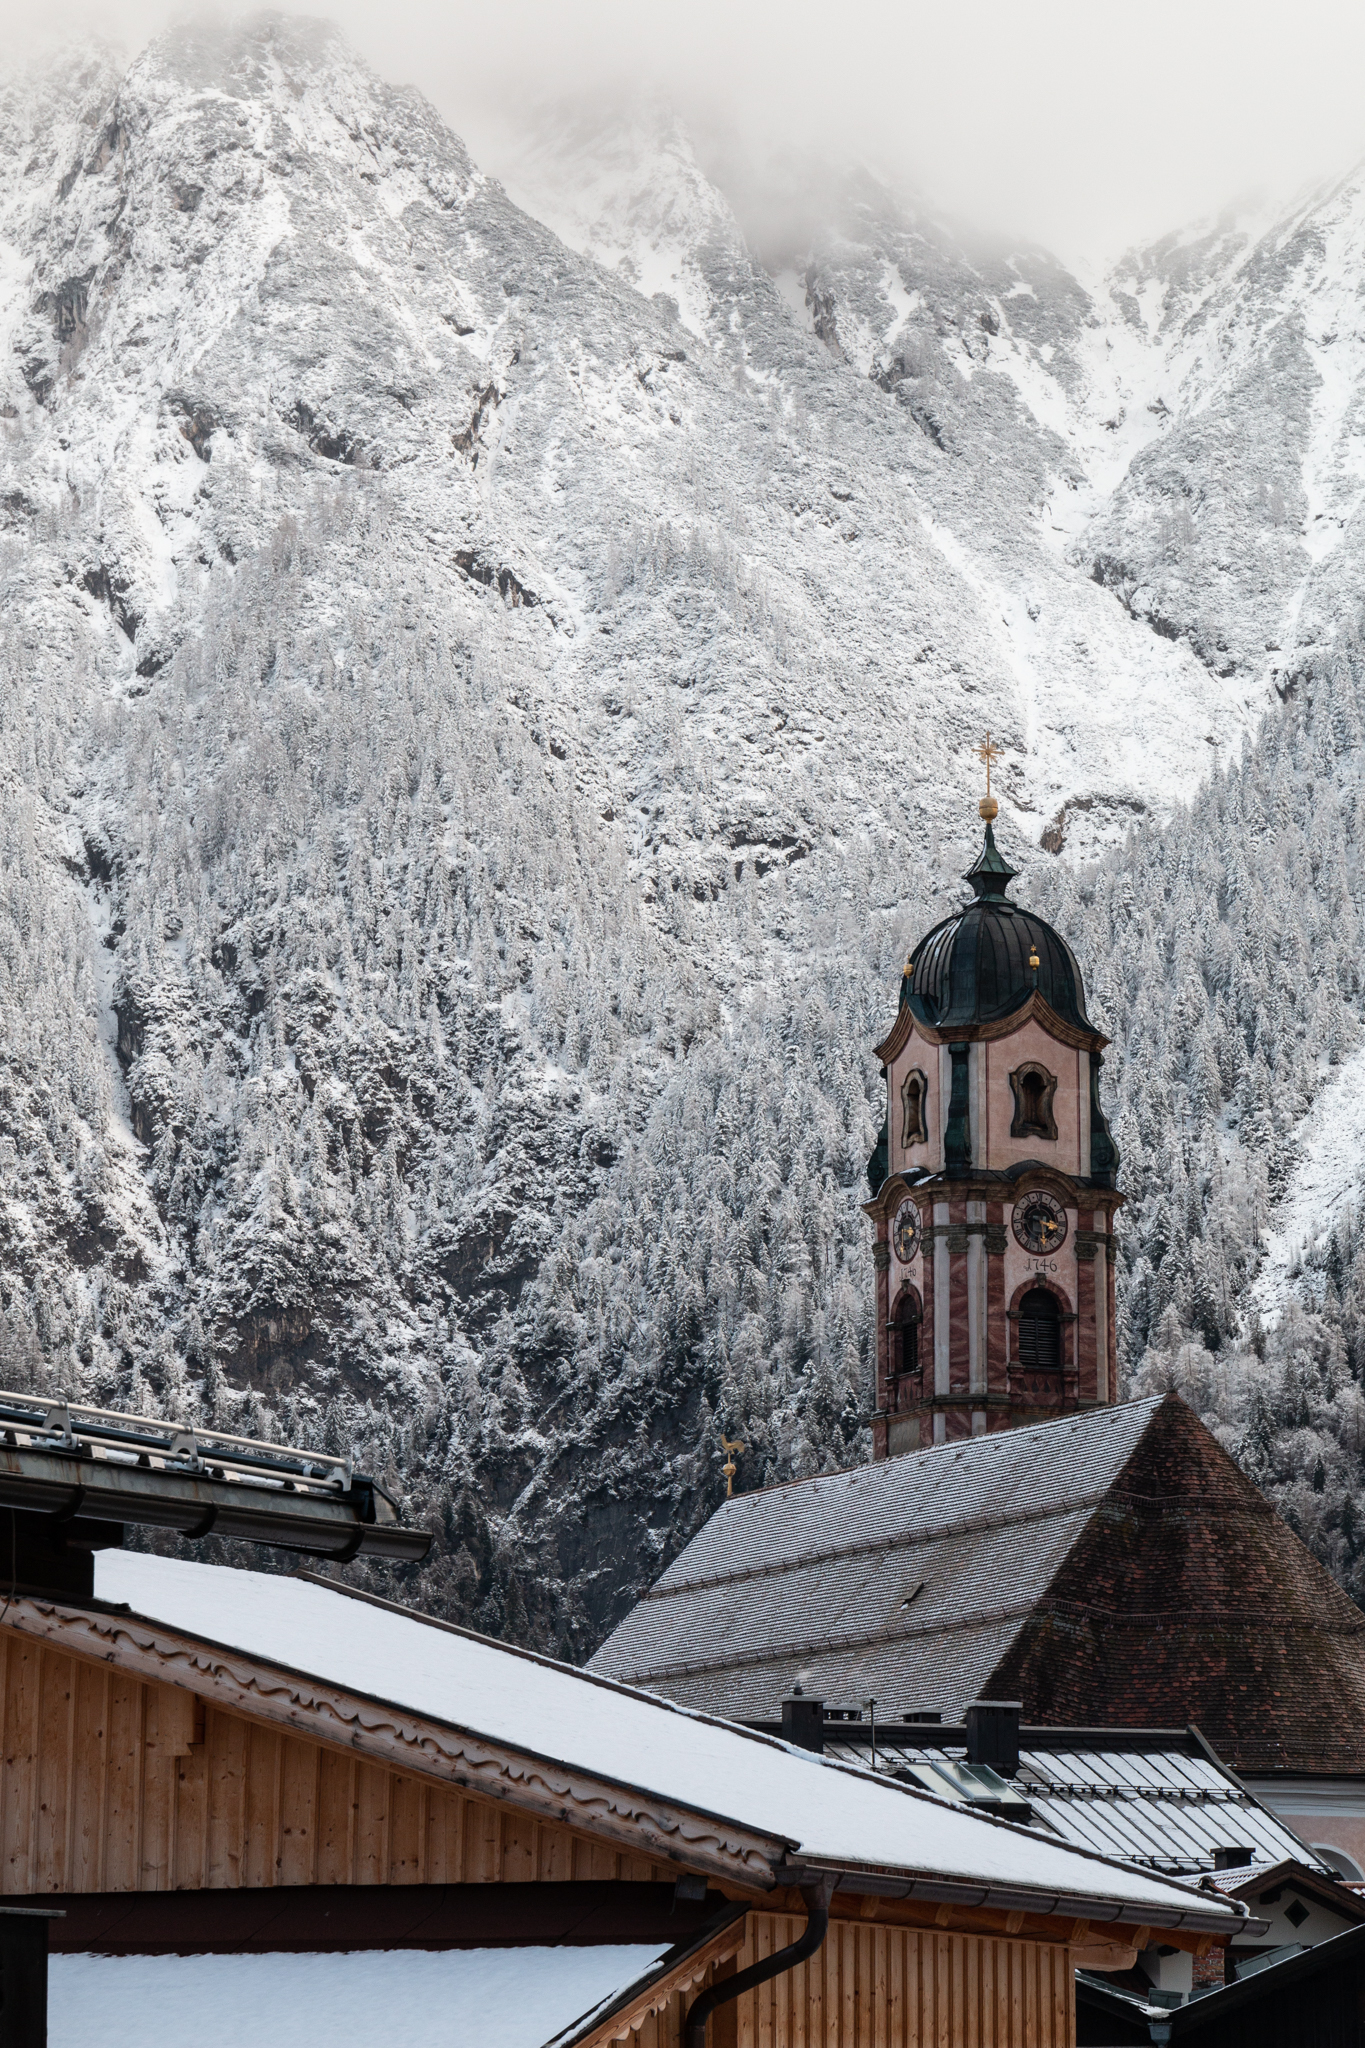 Mittenwald, Germany | Ciao Fabello